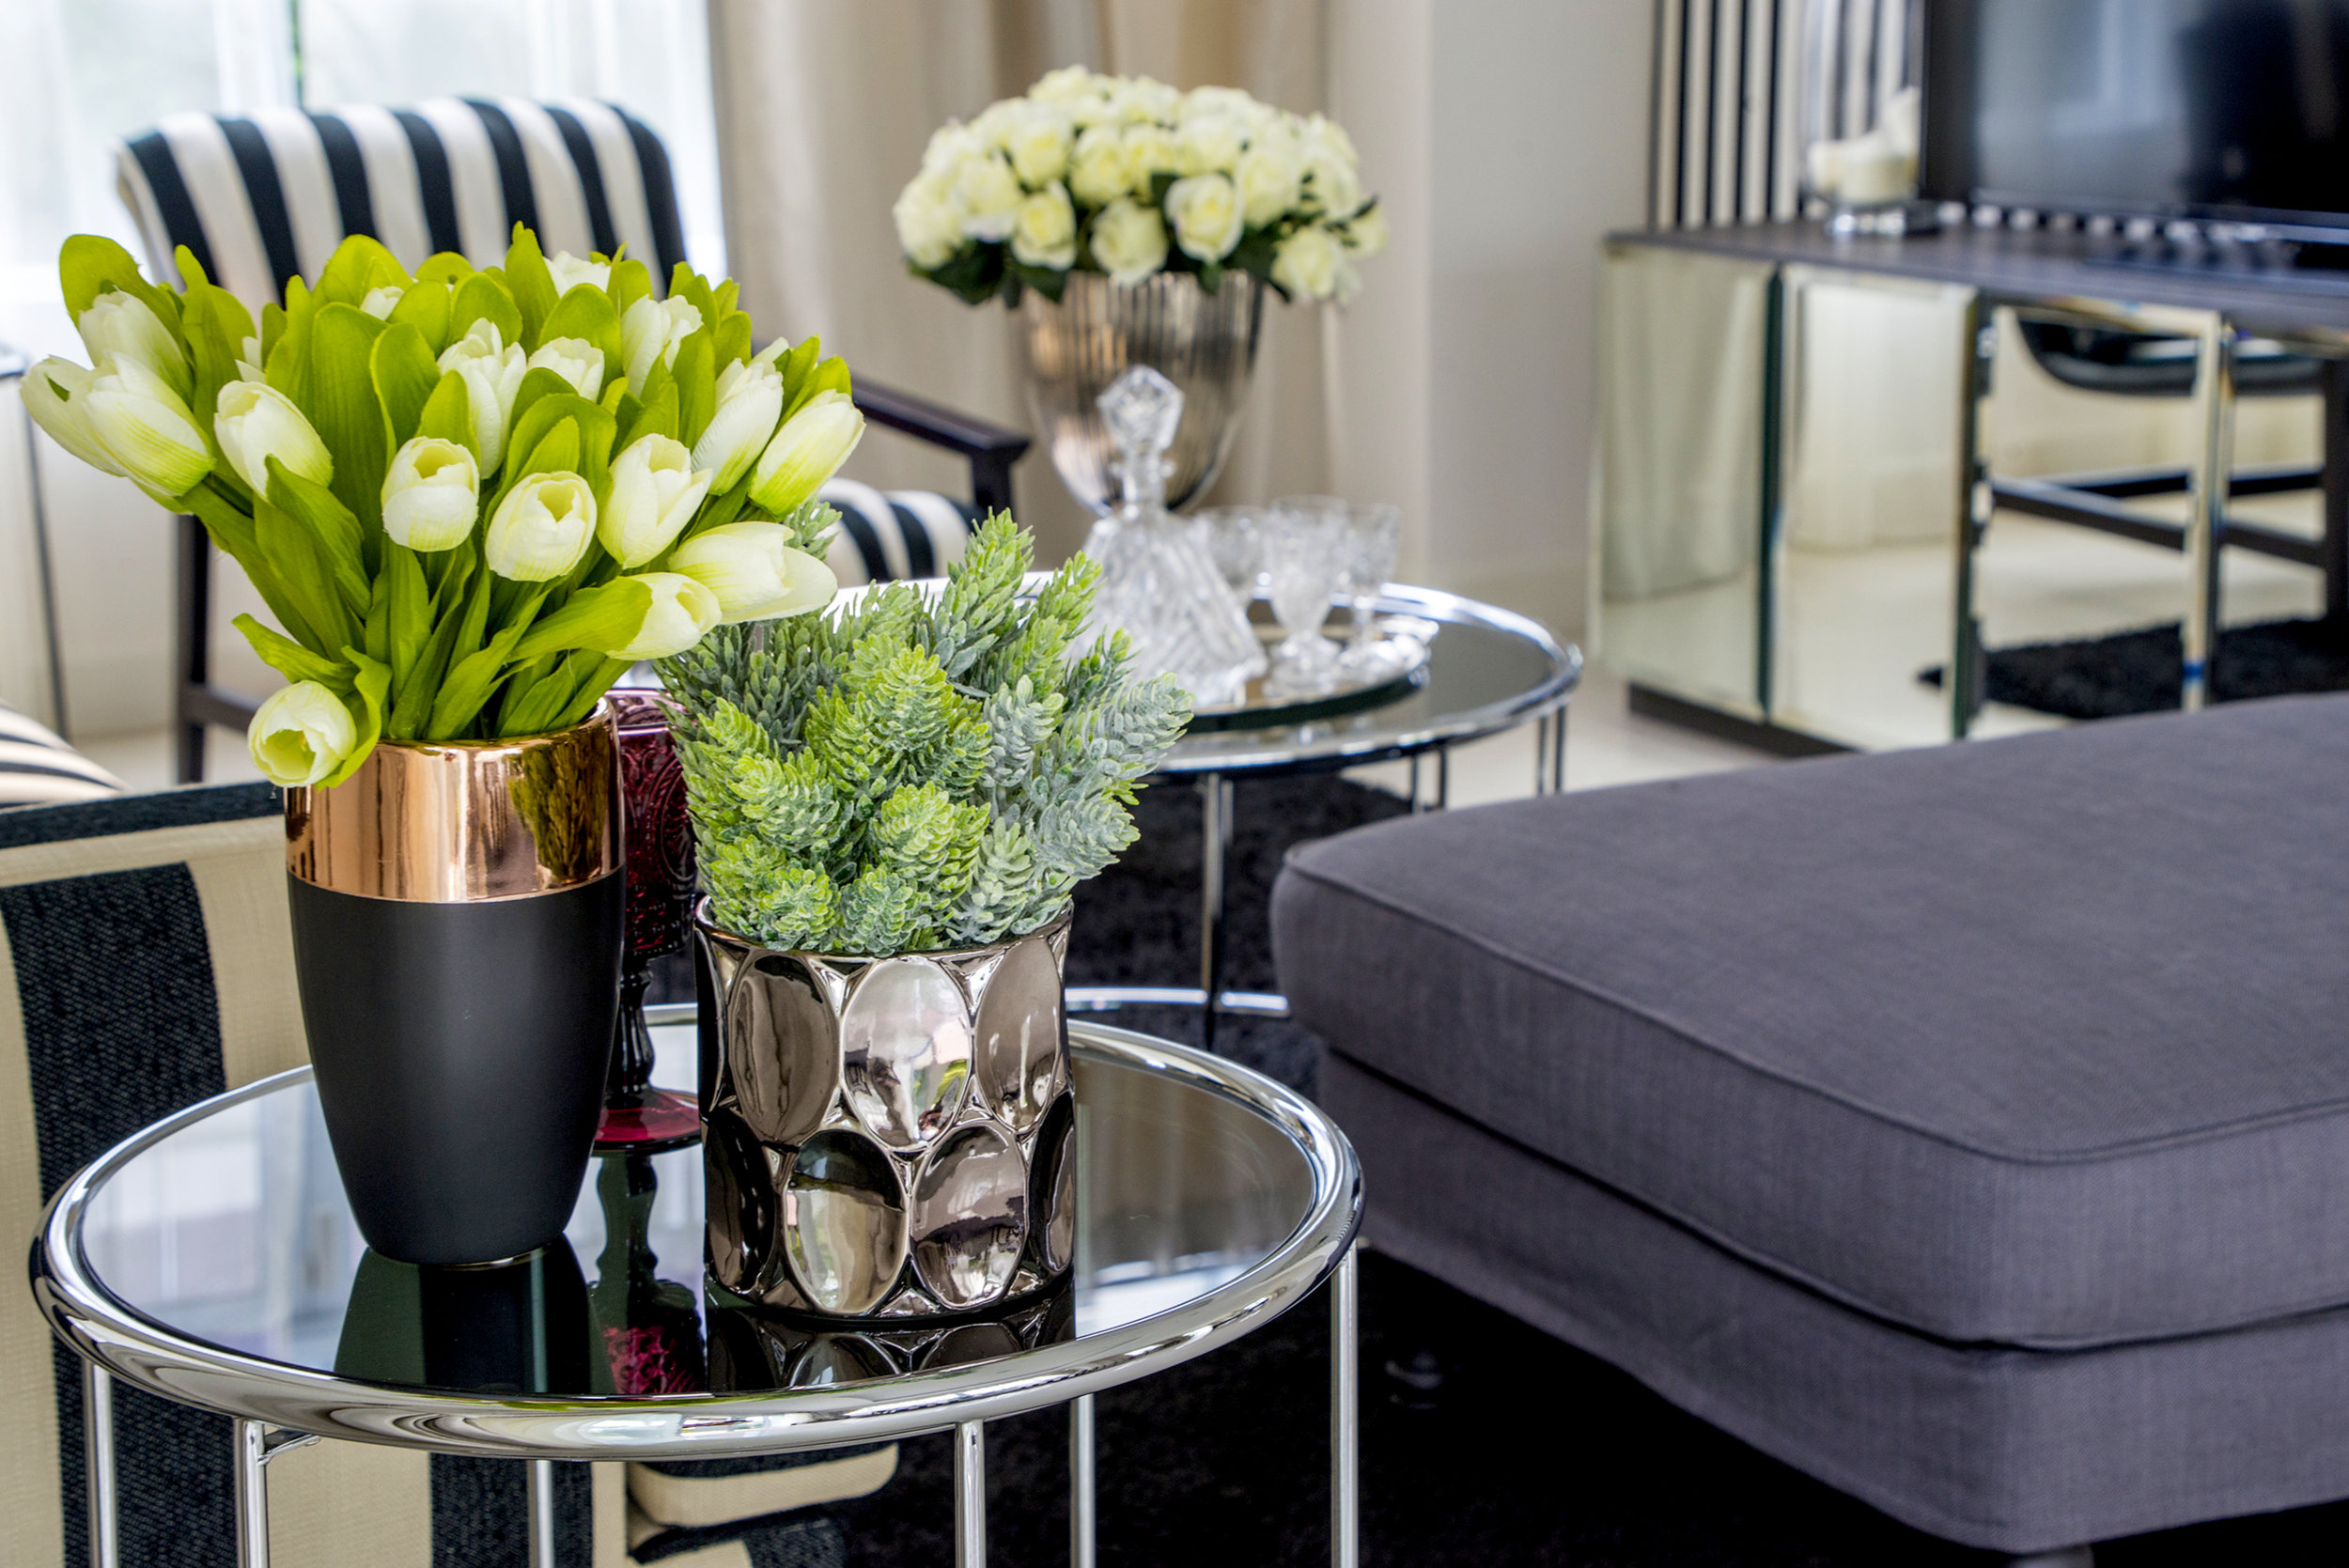 Botanicals, Vases, Candles, Pillows and Throws are all wonderful decor possibilities..